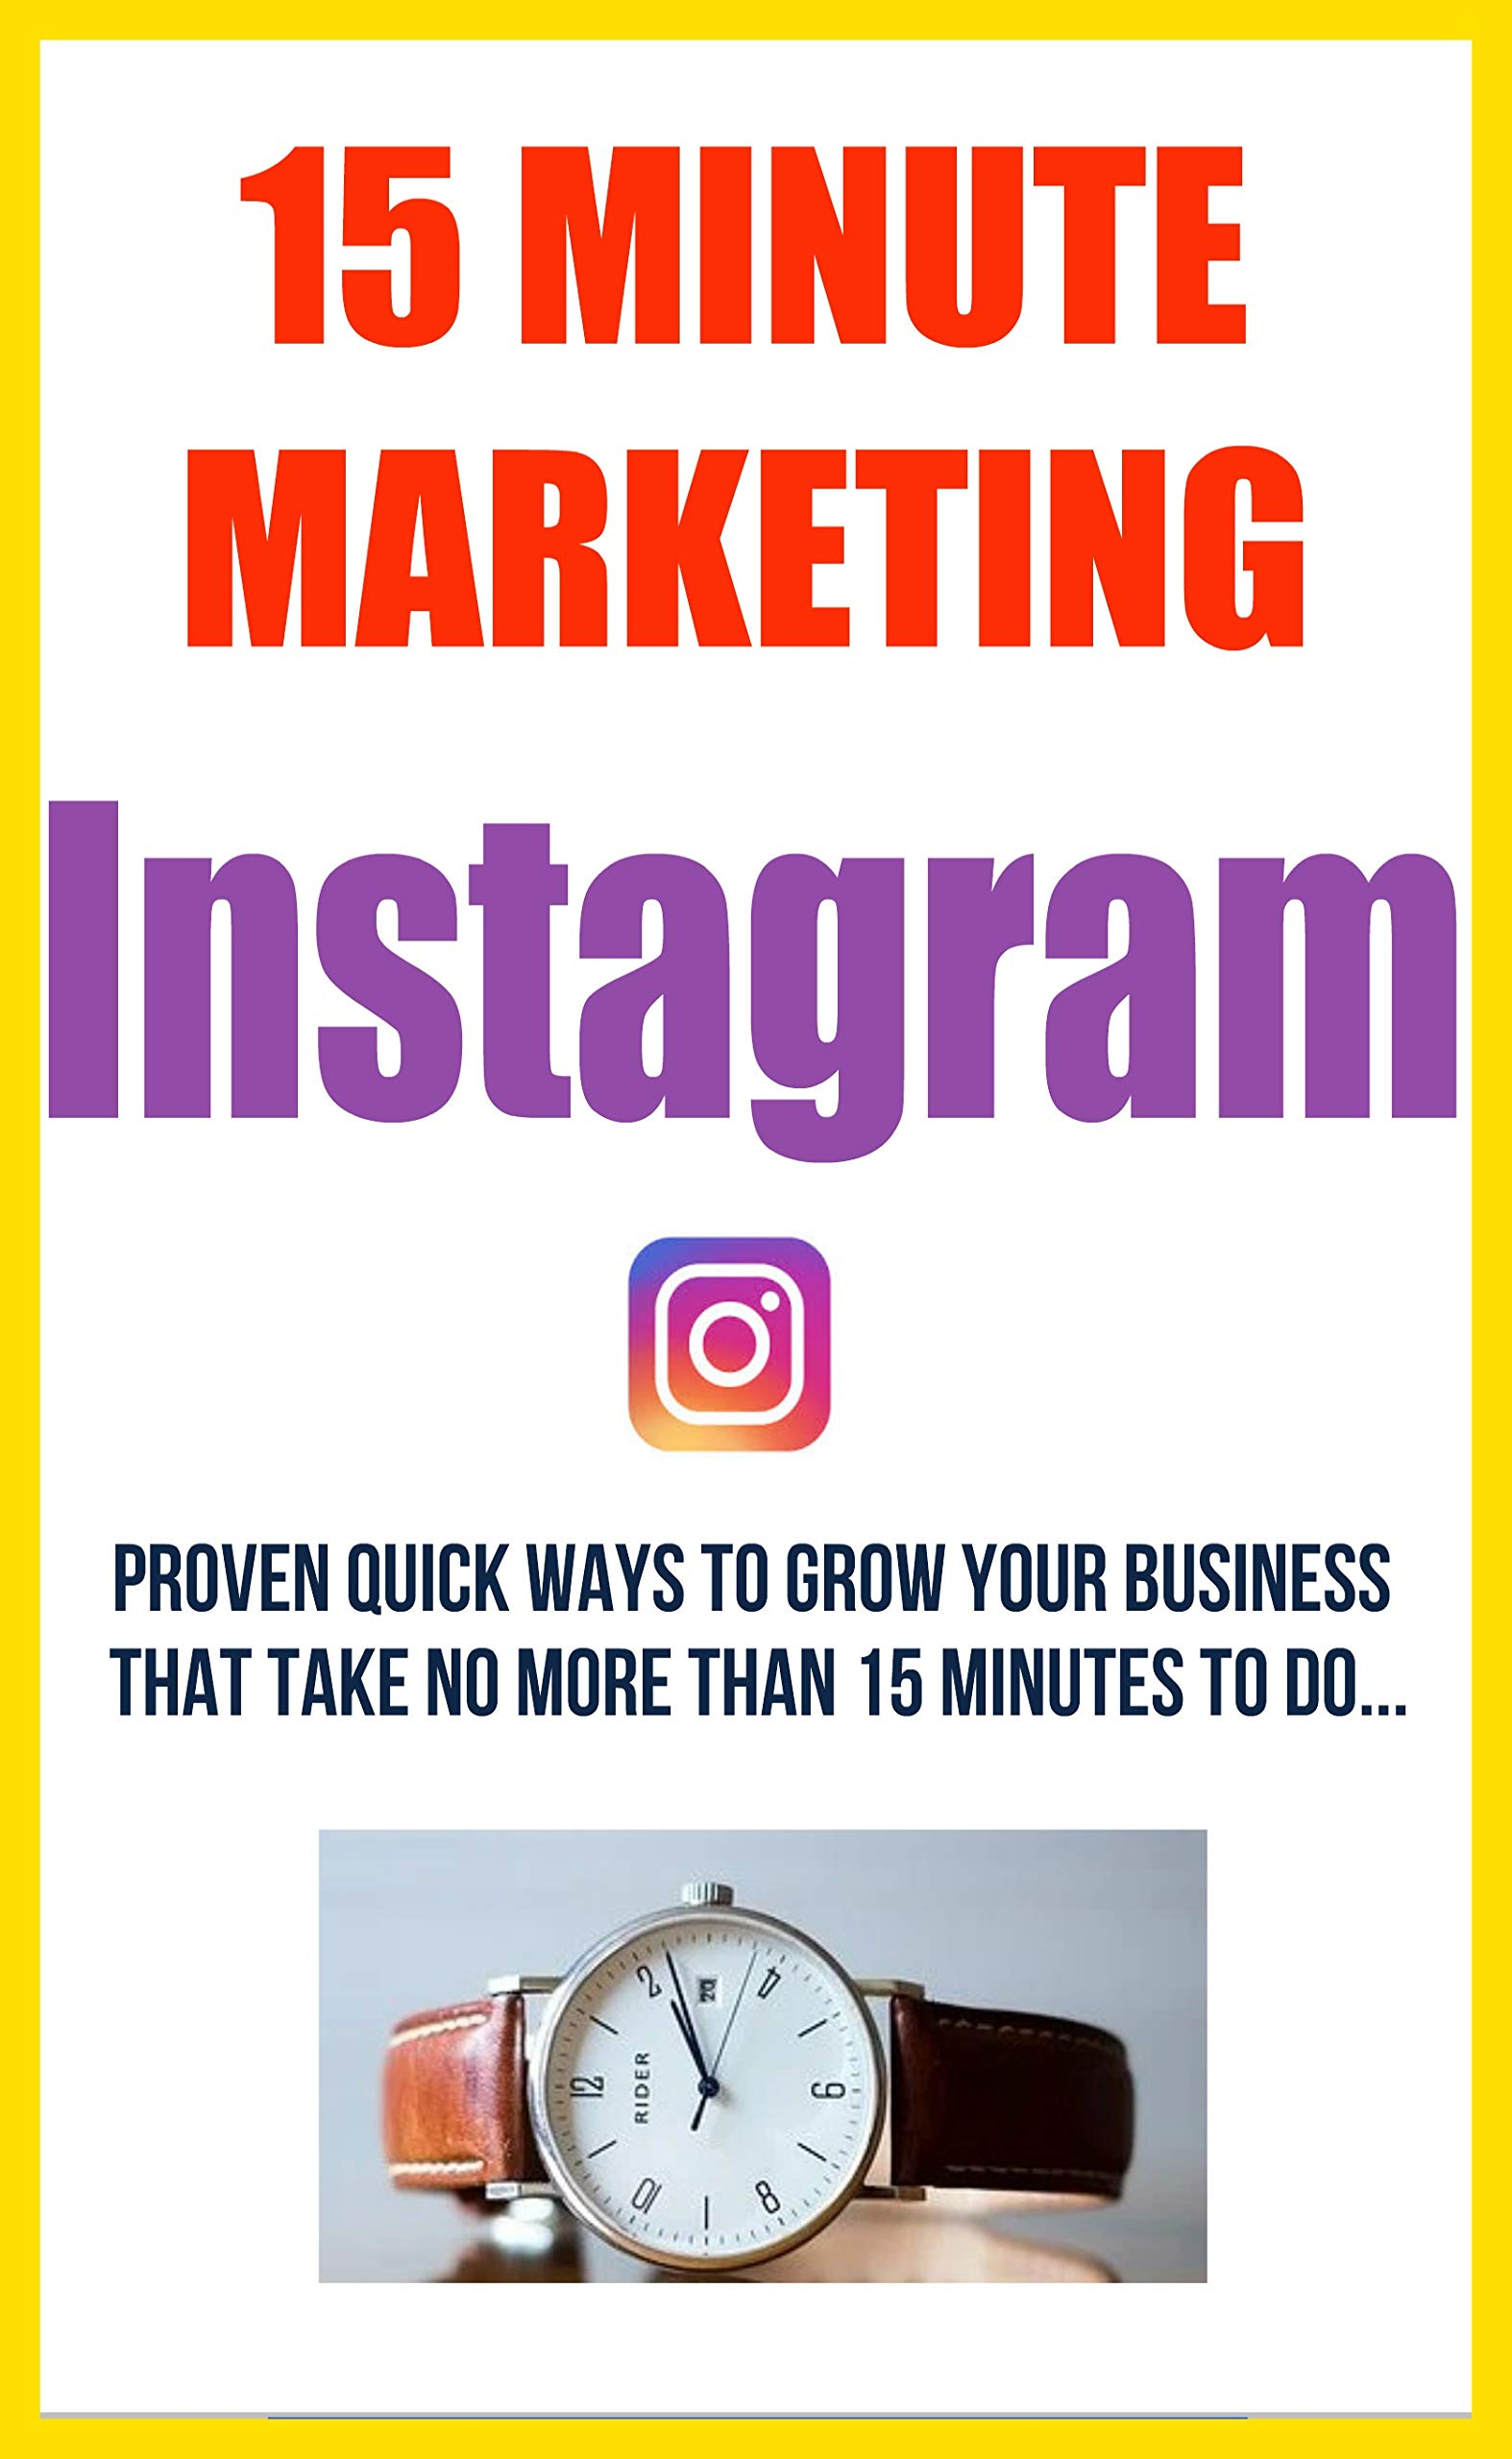 15 Minute Marketing For Instagram - [Quick & Easy Digital Marketing Solutions] For Small Business & Home Based Entrpreneurs